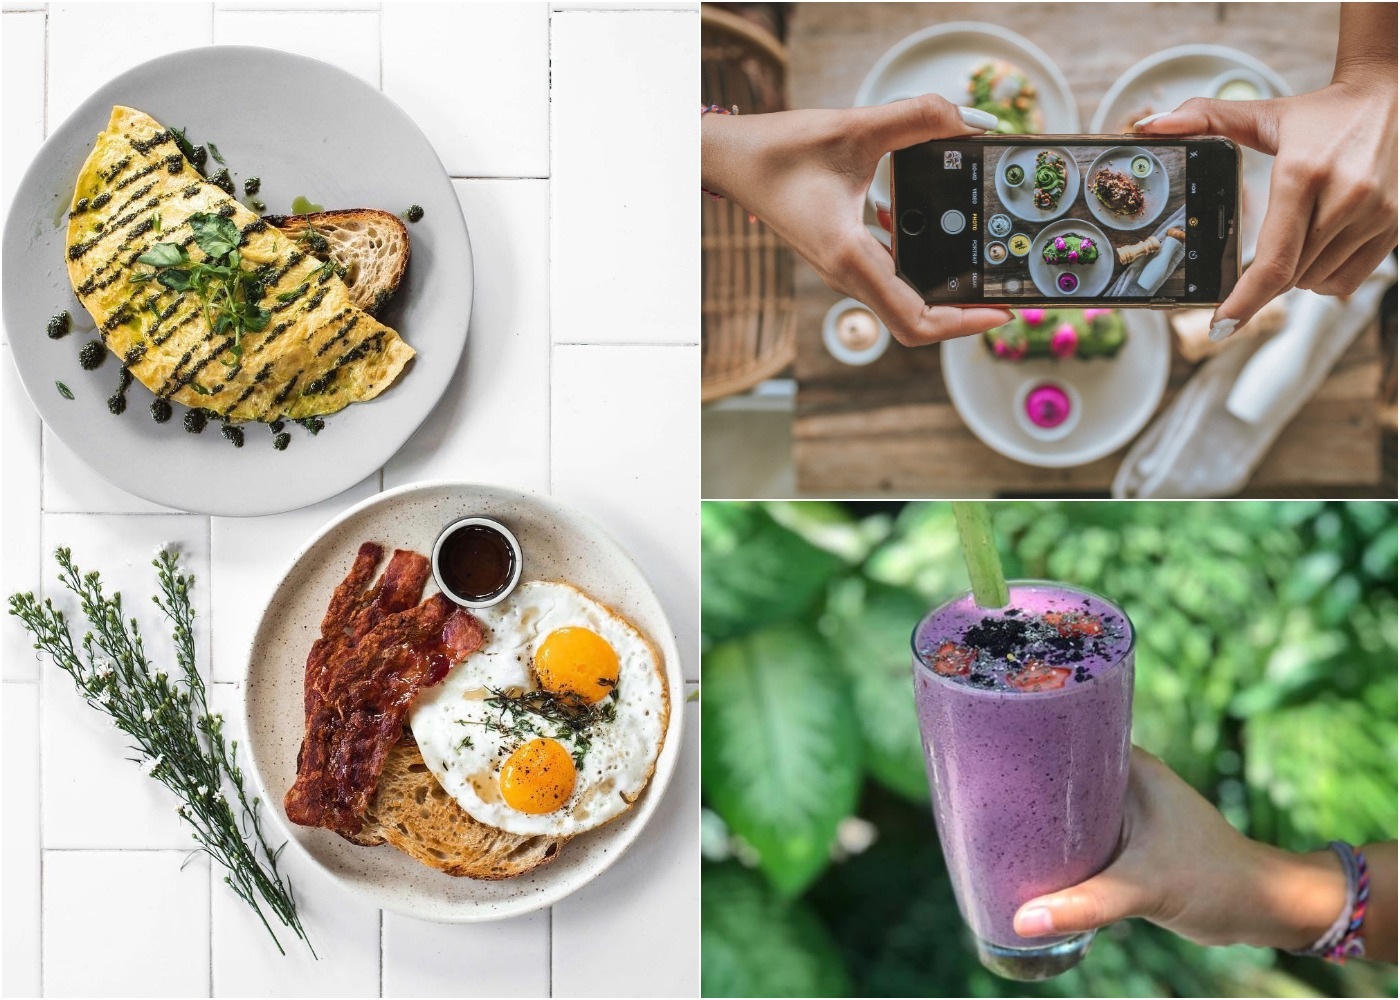 The best cafes in Canggu for breakfast, brunch, a vegan lunch or just great coffee